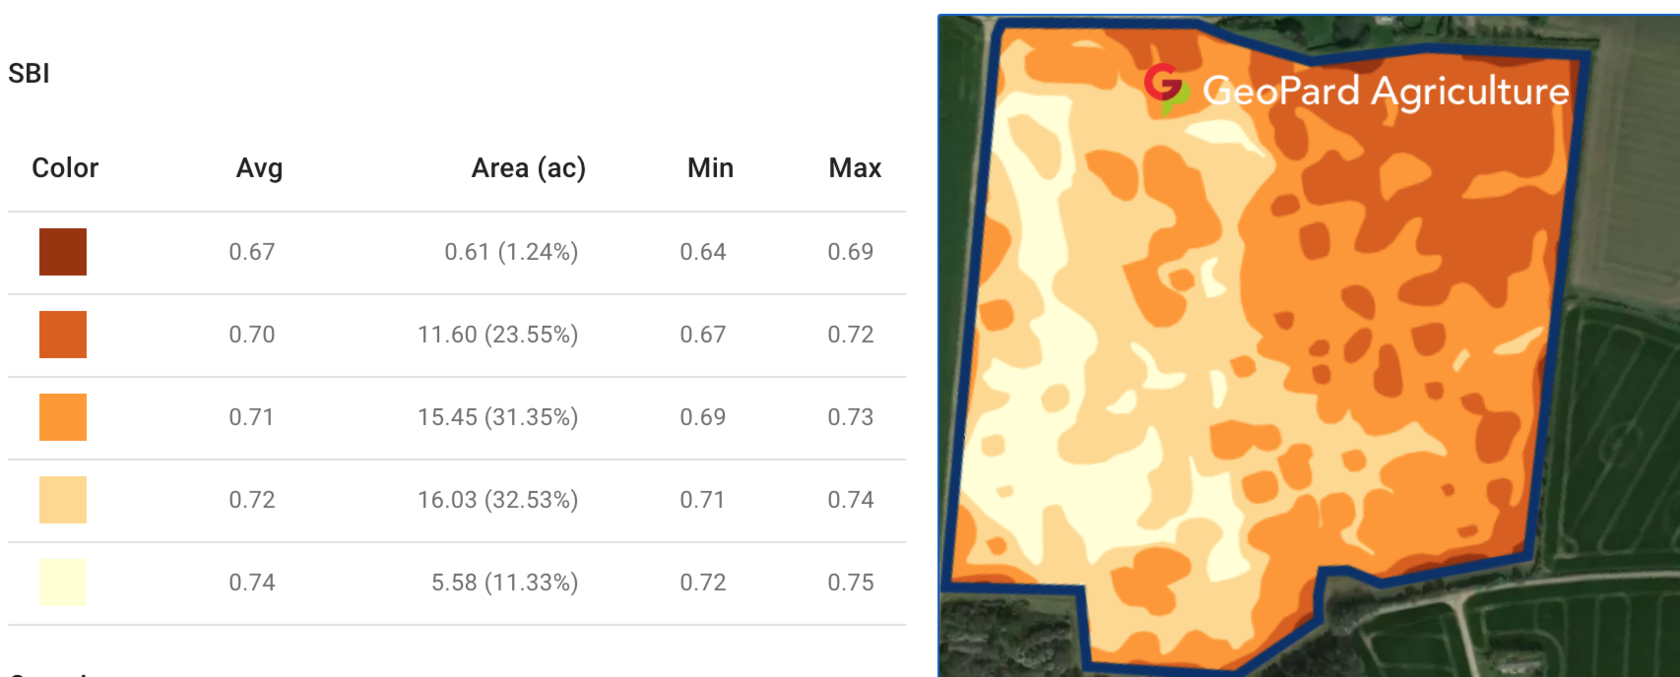 Soil Brightness Index calculated in GeoPard Agriculture platform